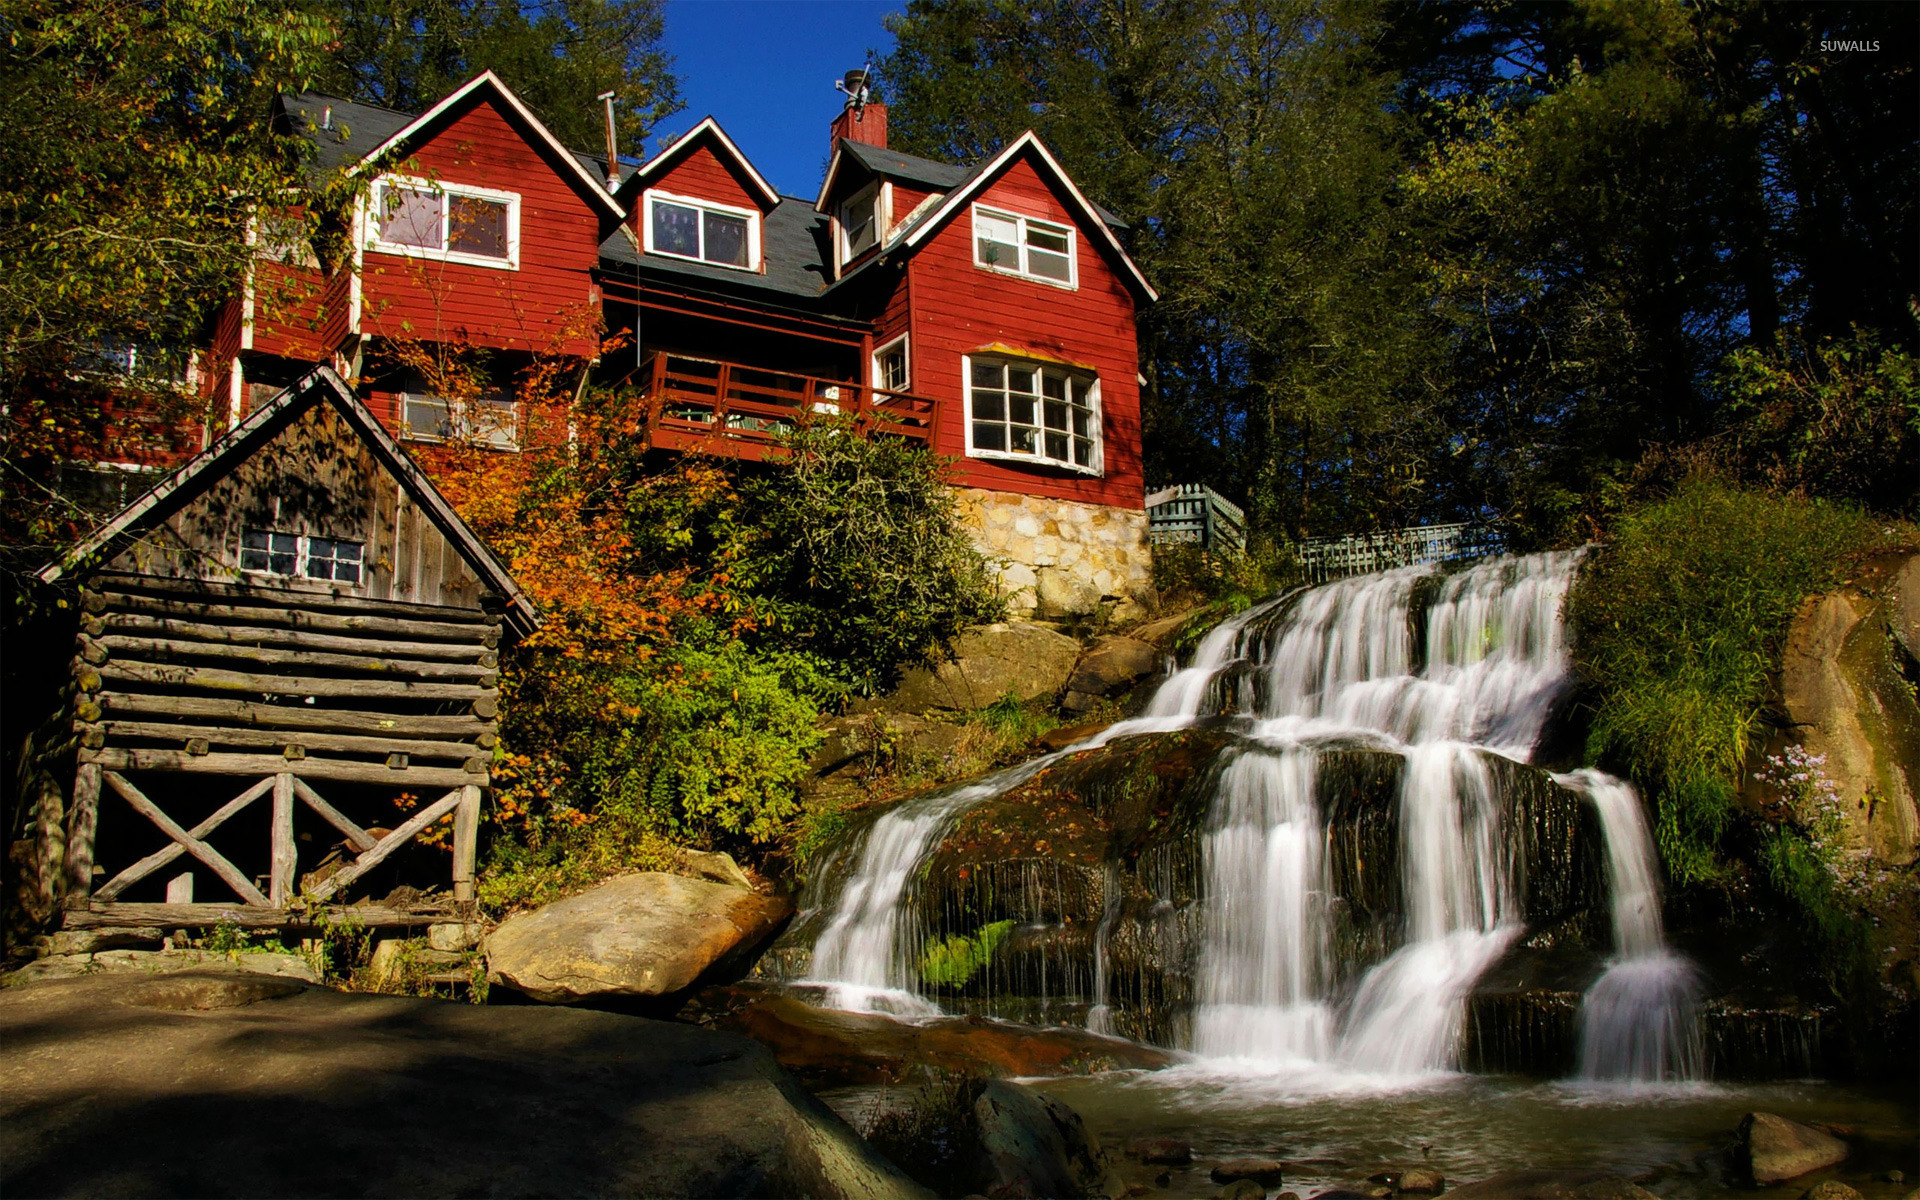 Red House Next To The Waterfall Wallpaper World